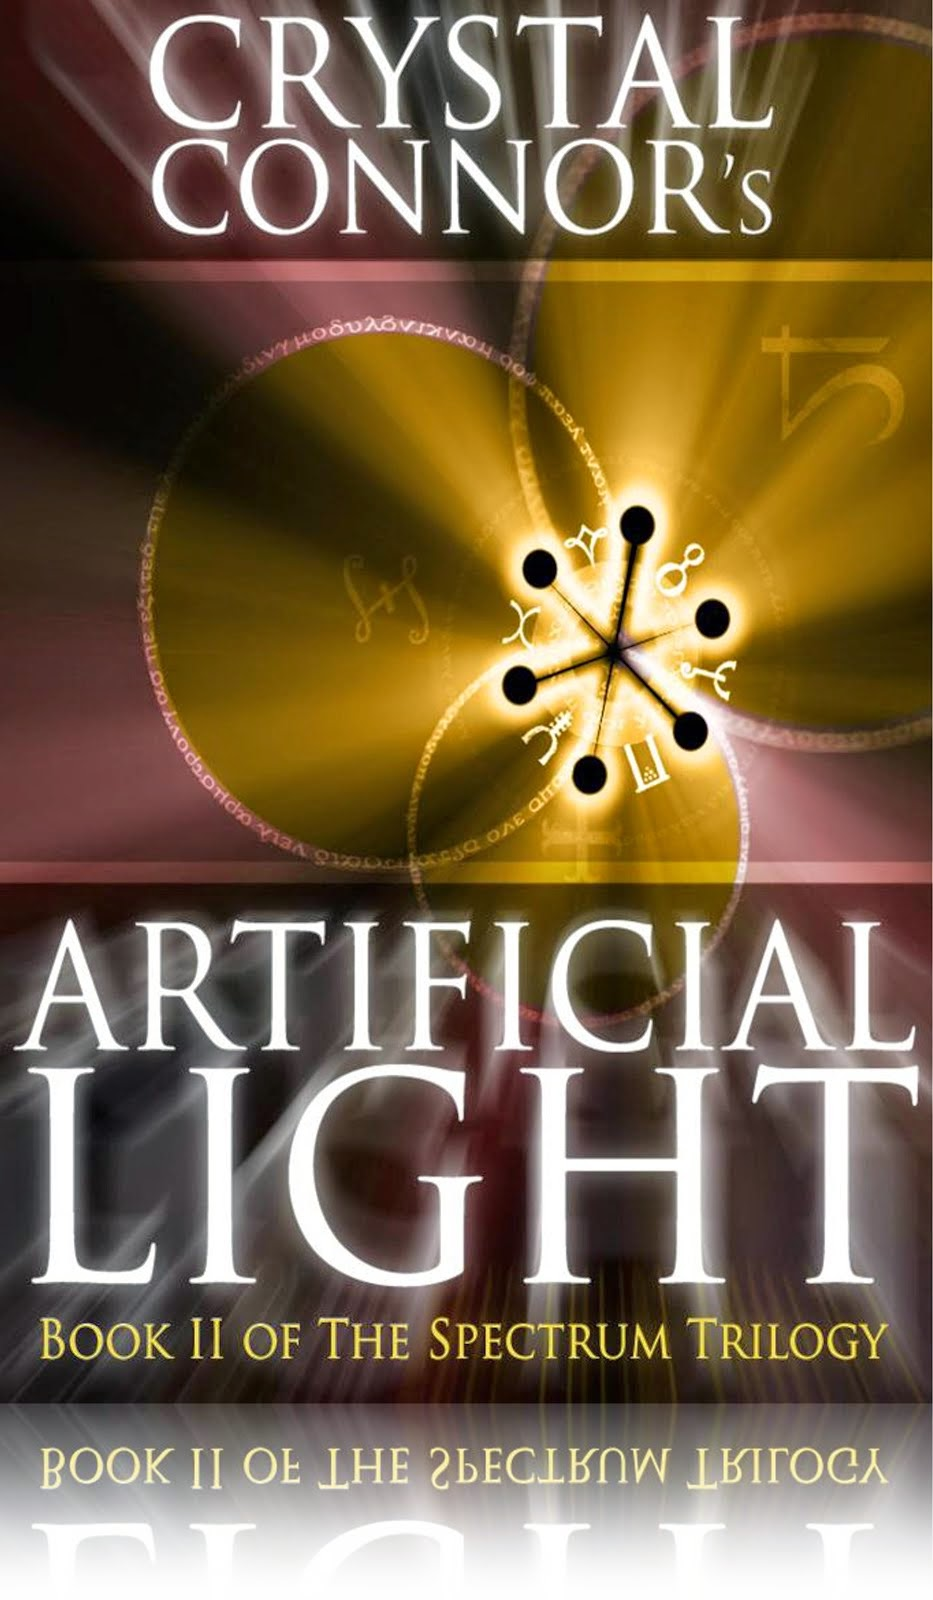 Click here to purchase: Artificial Light!